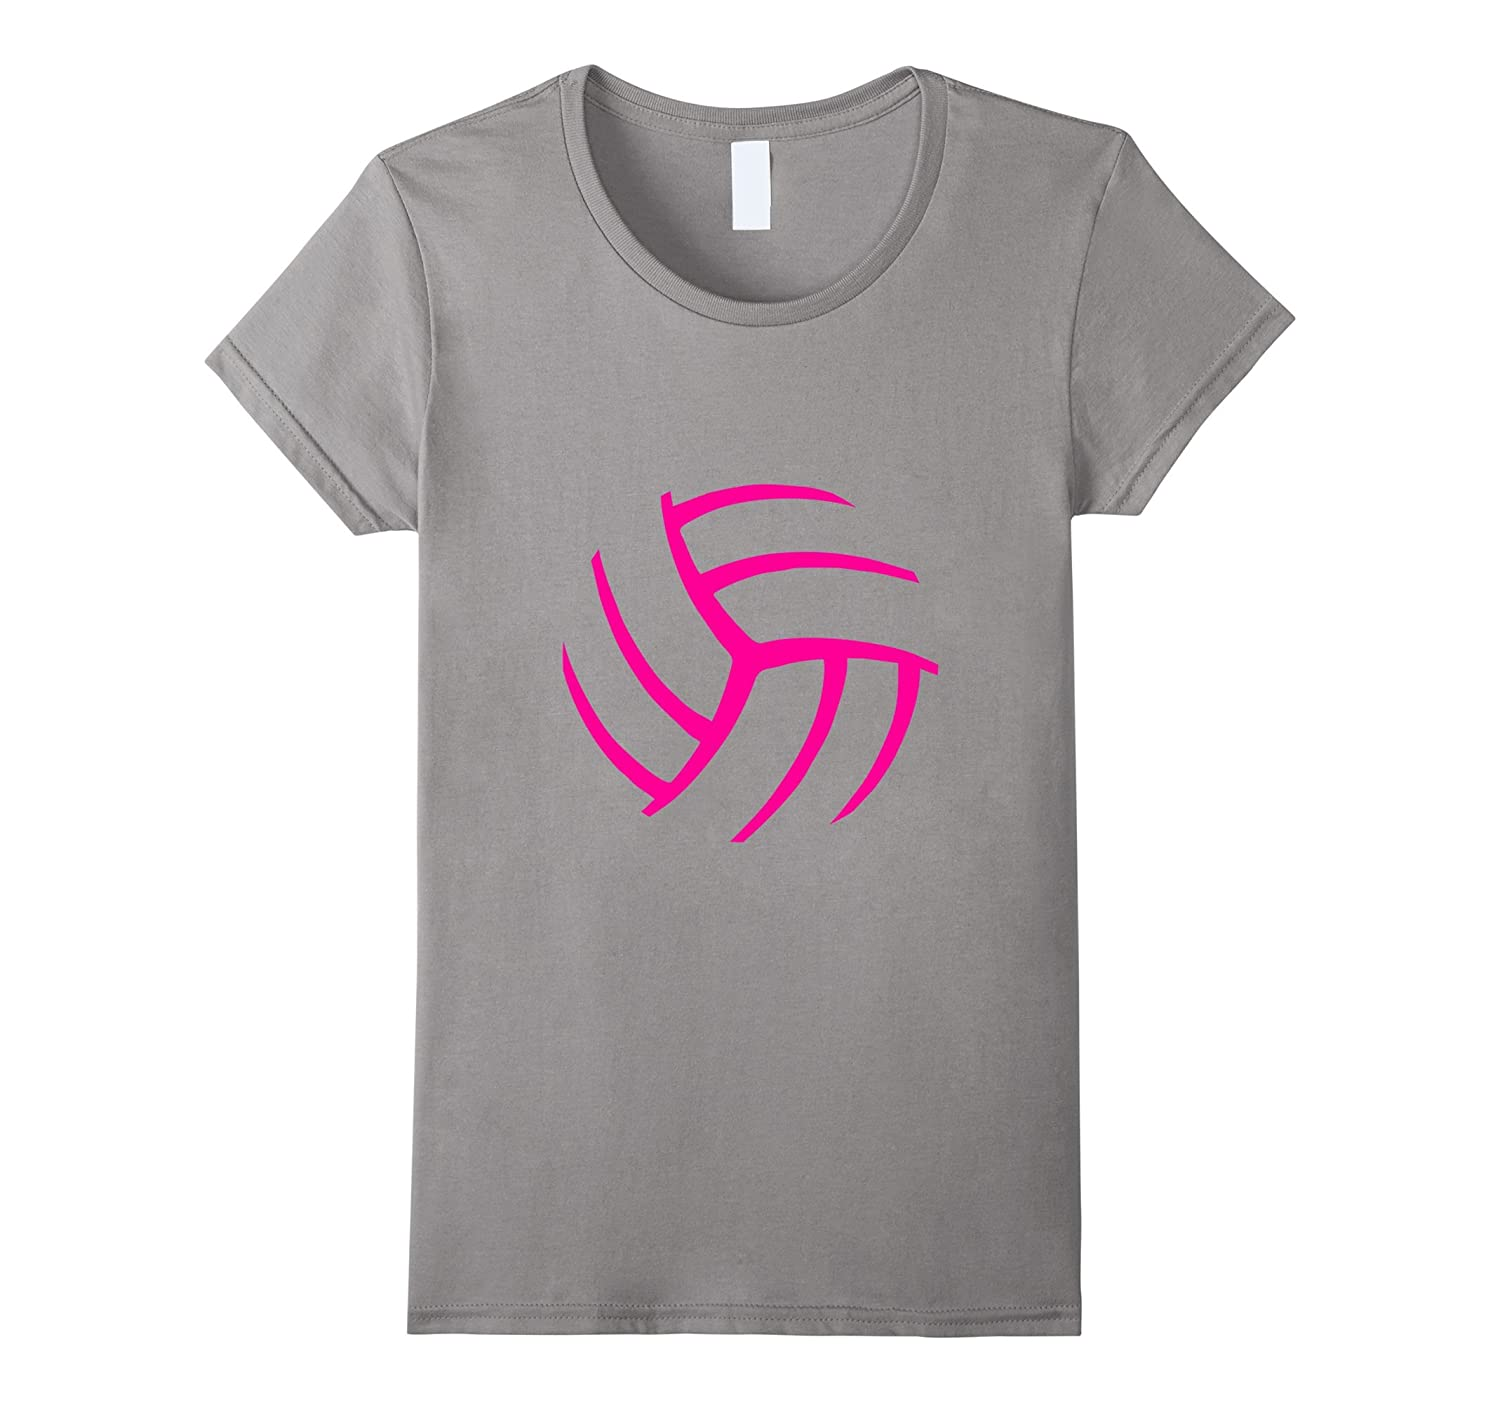 924ab216 Women Volleyball Apparel - Graphic design t-shirt for girls-ANZ ...